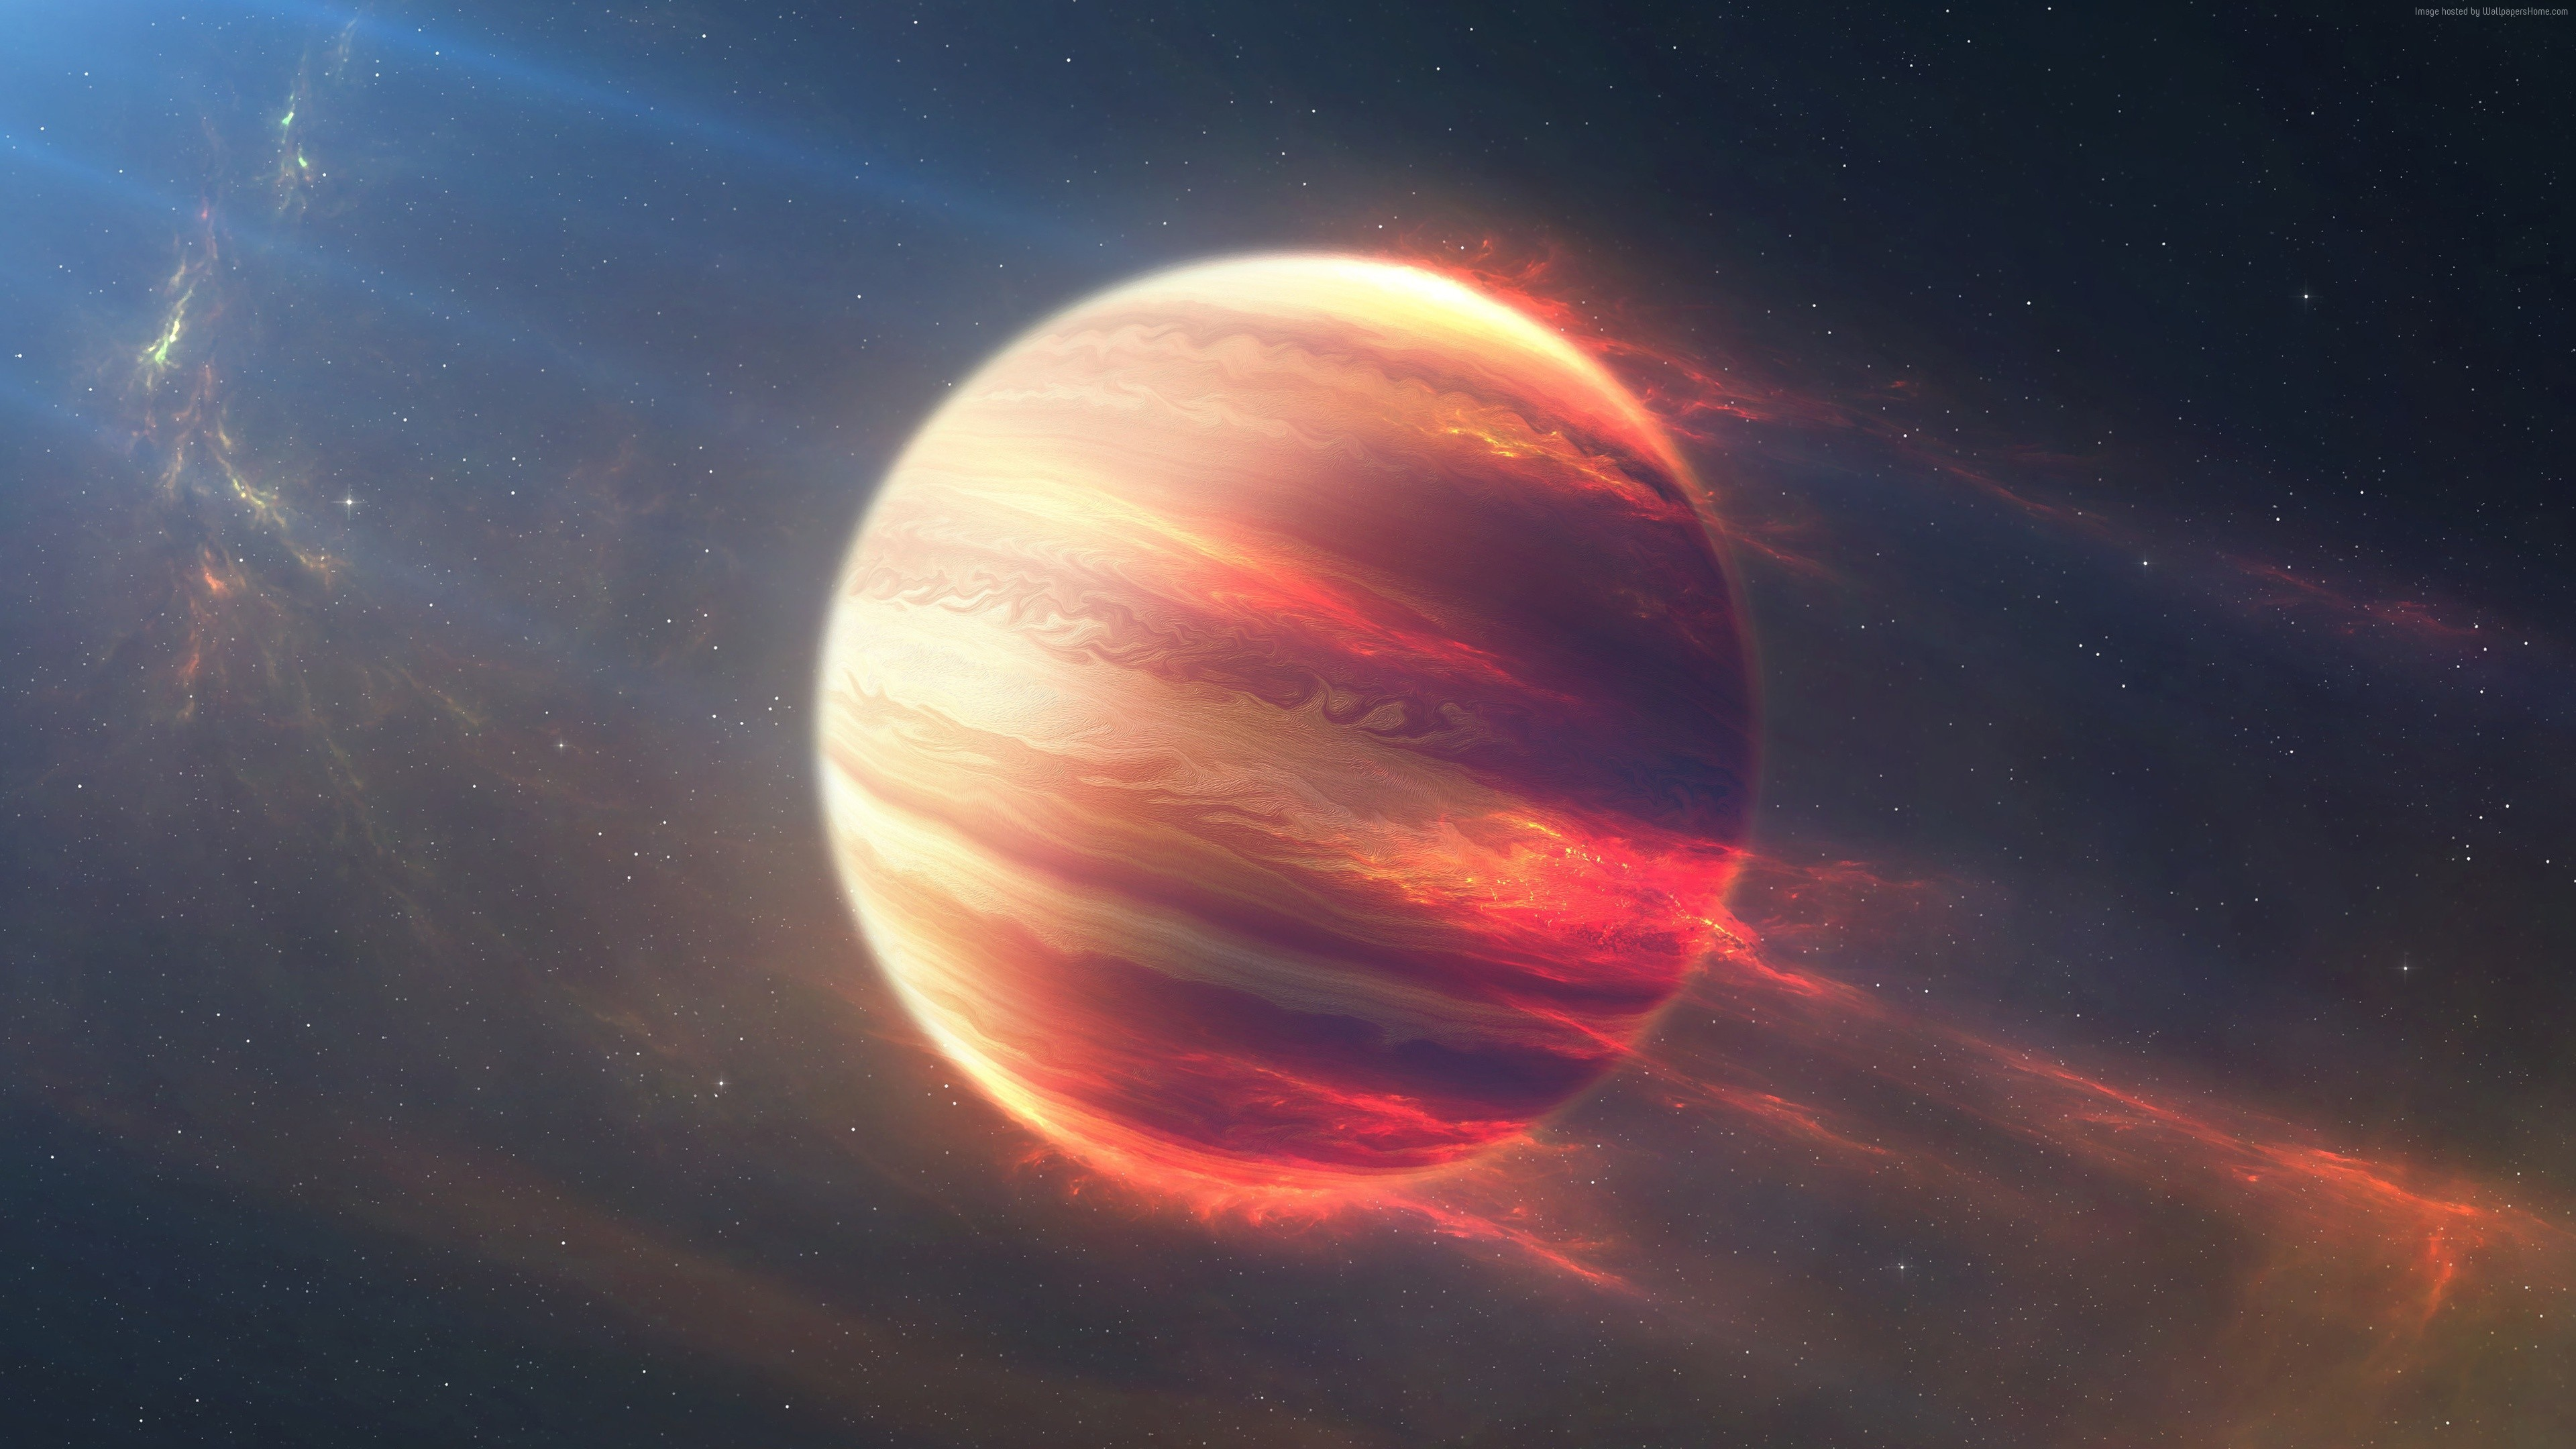 space planet 4k, hd digital universe, 4k wallpapers, images